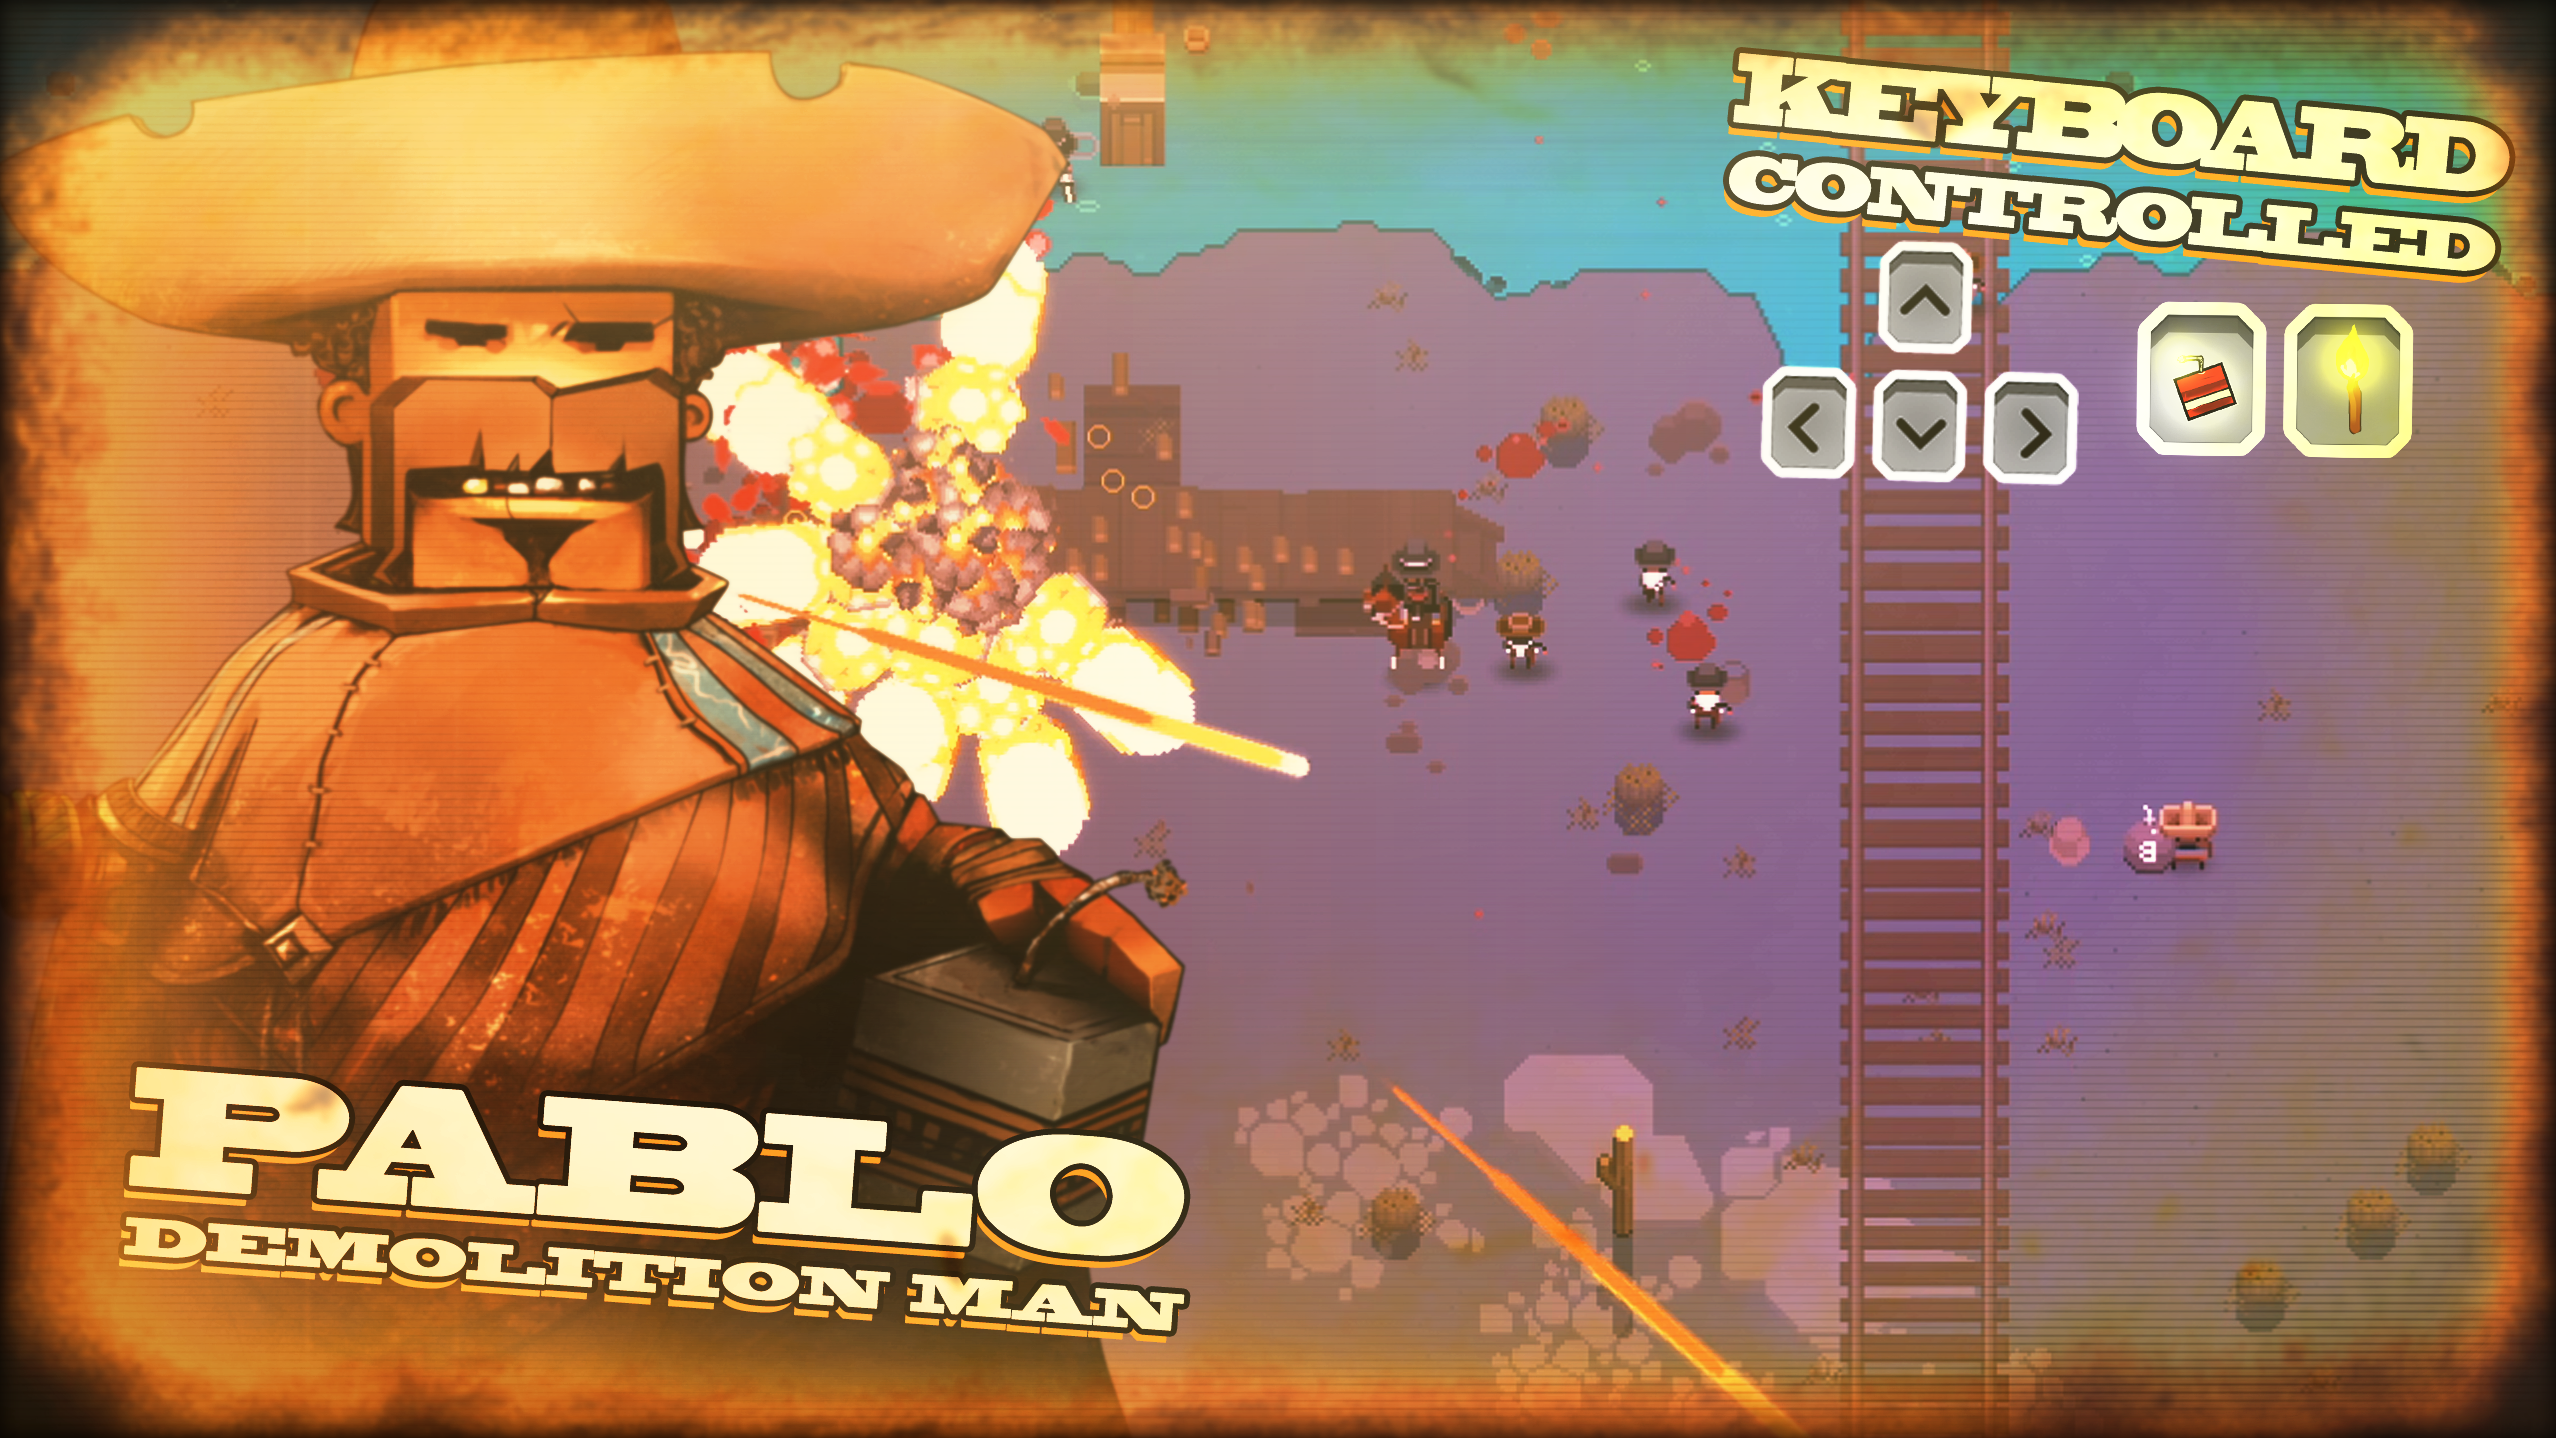 A Fistful of Gun Character - Pablo